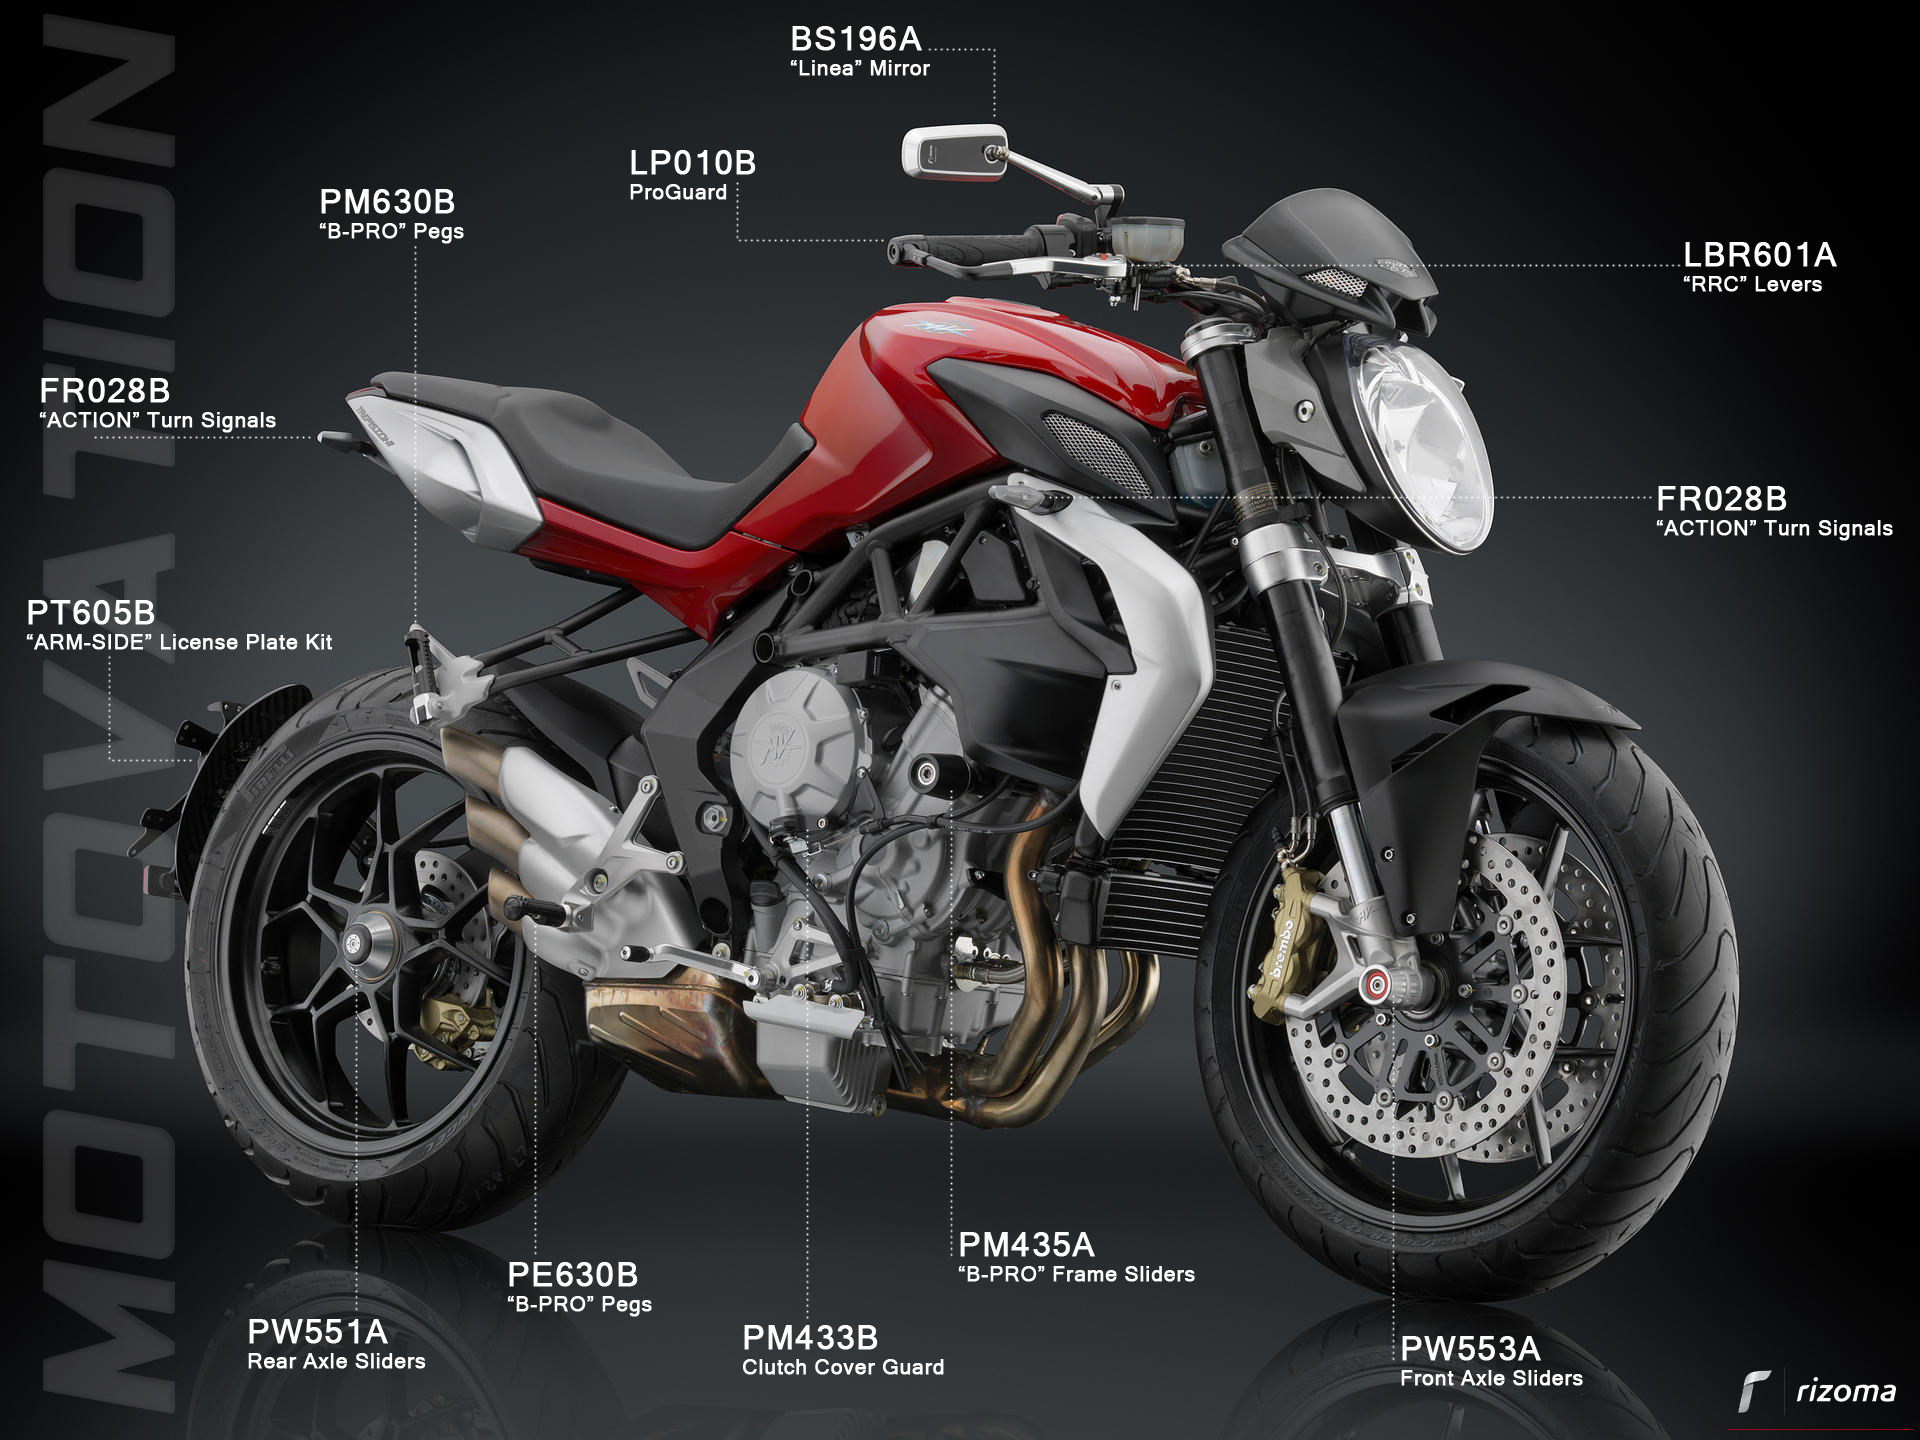 mv agusta brutale 675 right side full diagram FULL_1 rizoma action led turn signals  at readyjetset.co